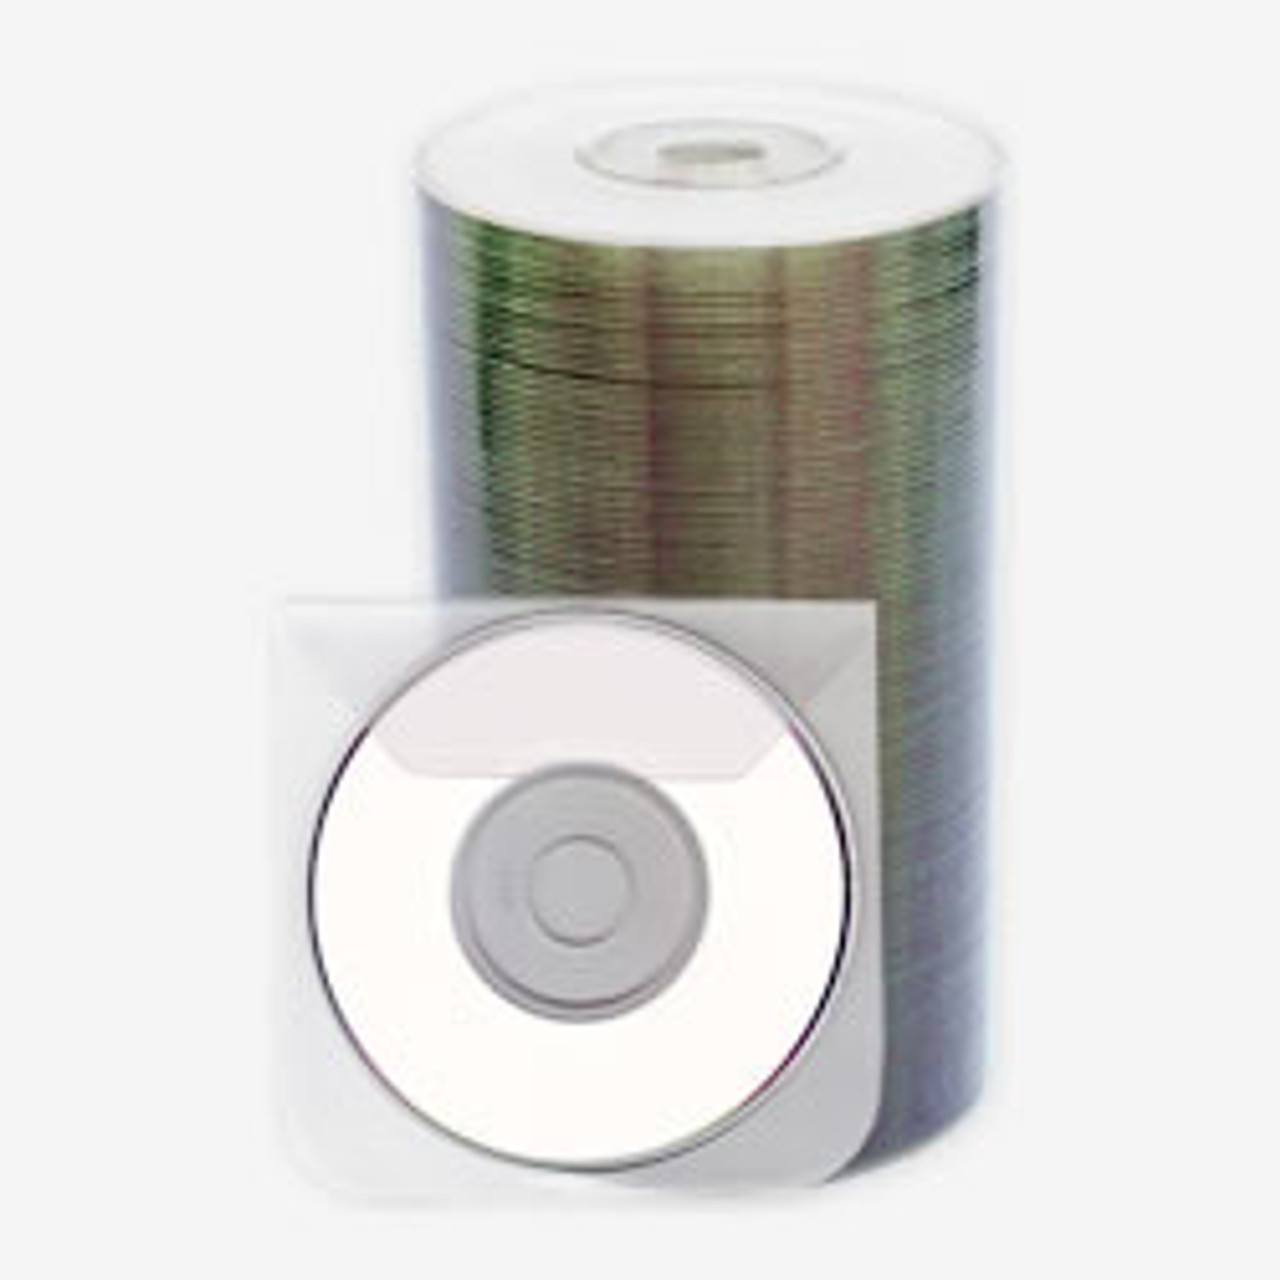 Product image for Intact Mini DVD-R 1.4GB Whitetop Printable 50pcs Spindle with Sleeves | CX Computer Superstore